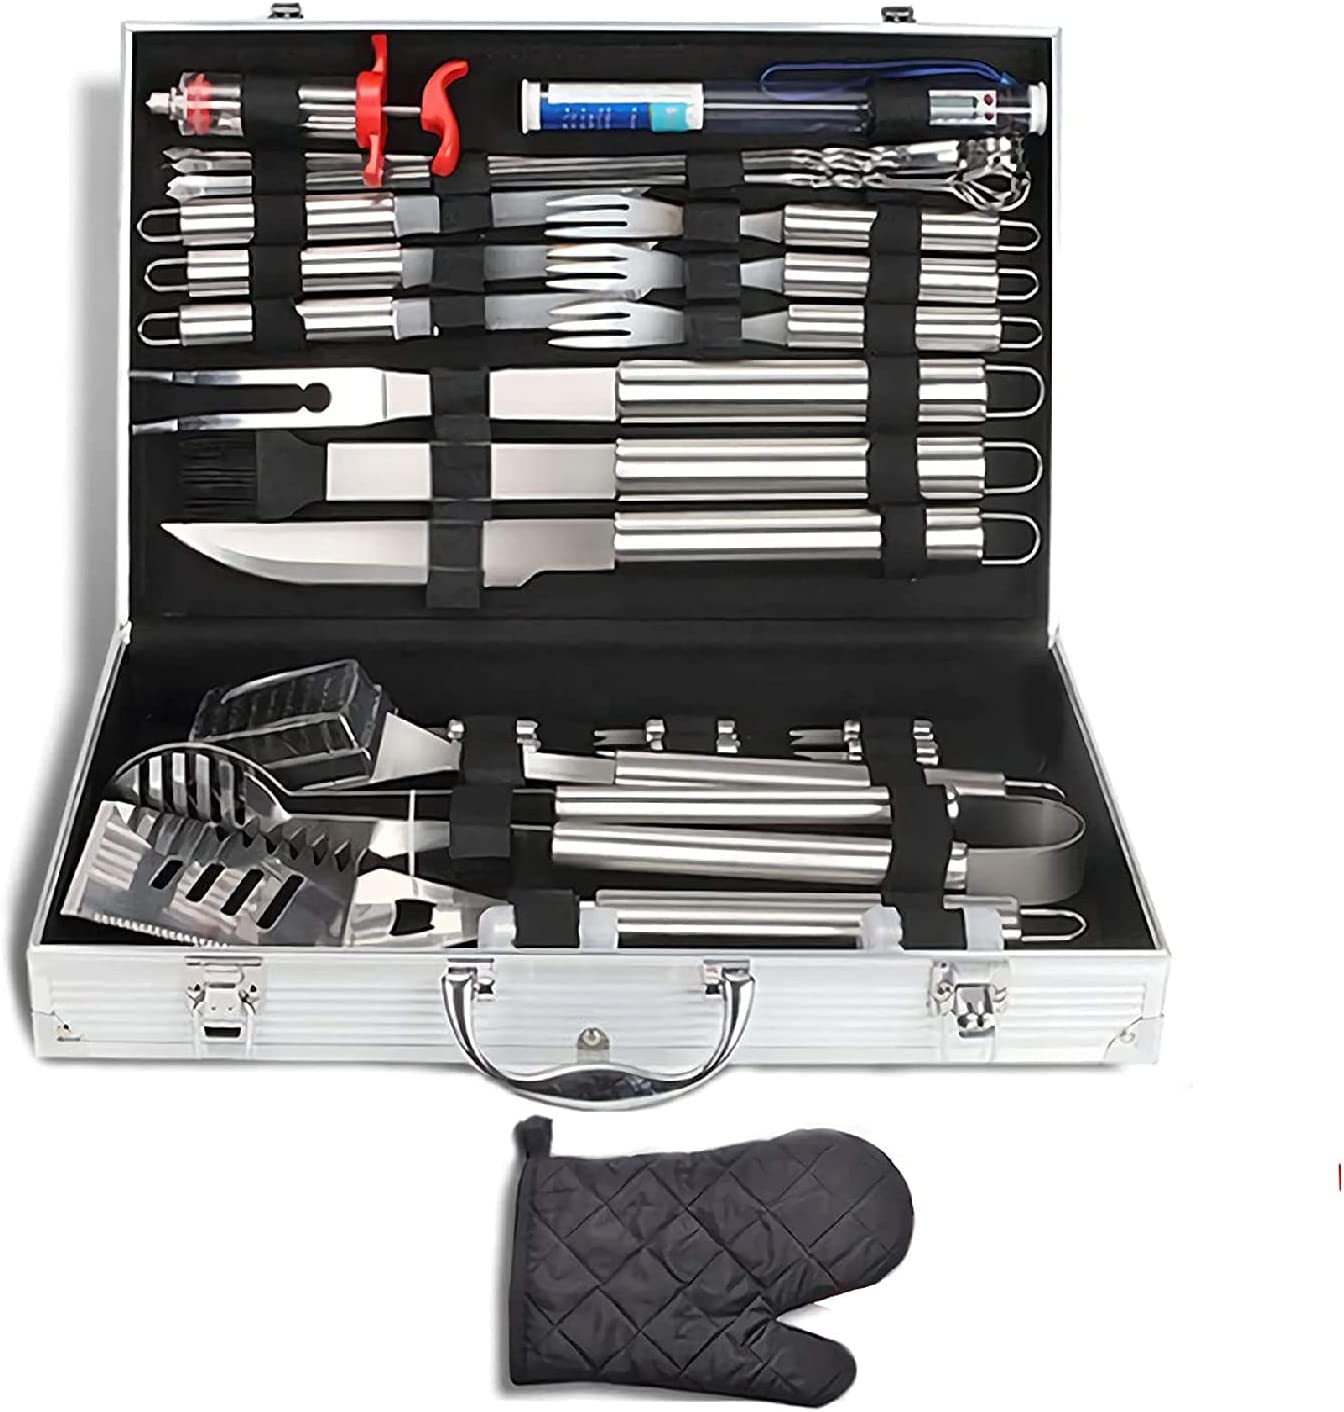 ZNWEATCZ BBQ Grill Tools Large discharge sale Set 32Pcs Grilling Gl Utensil with Safety and trust